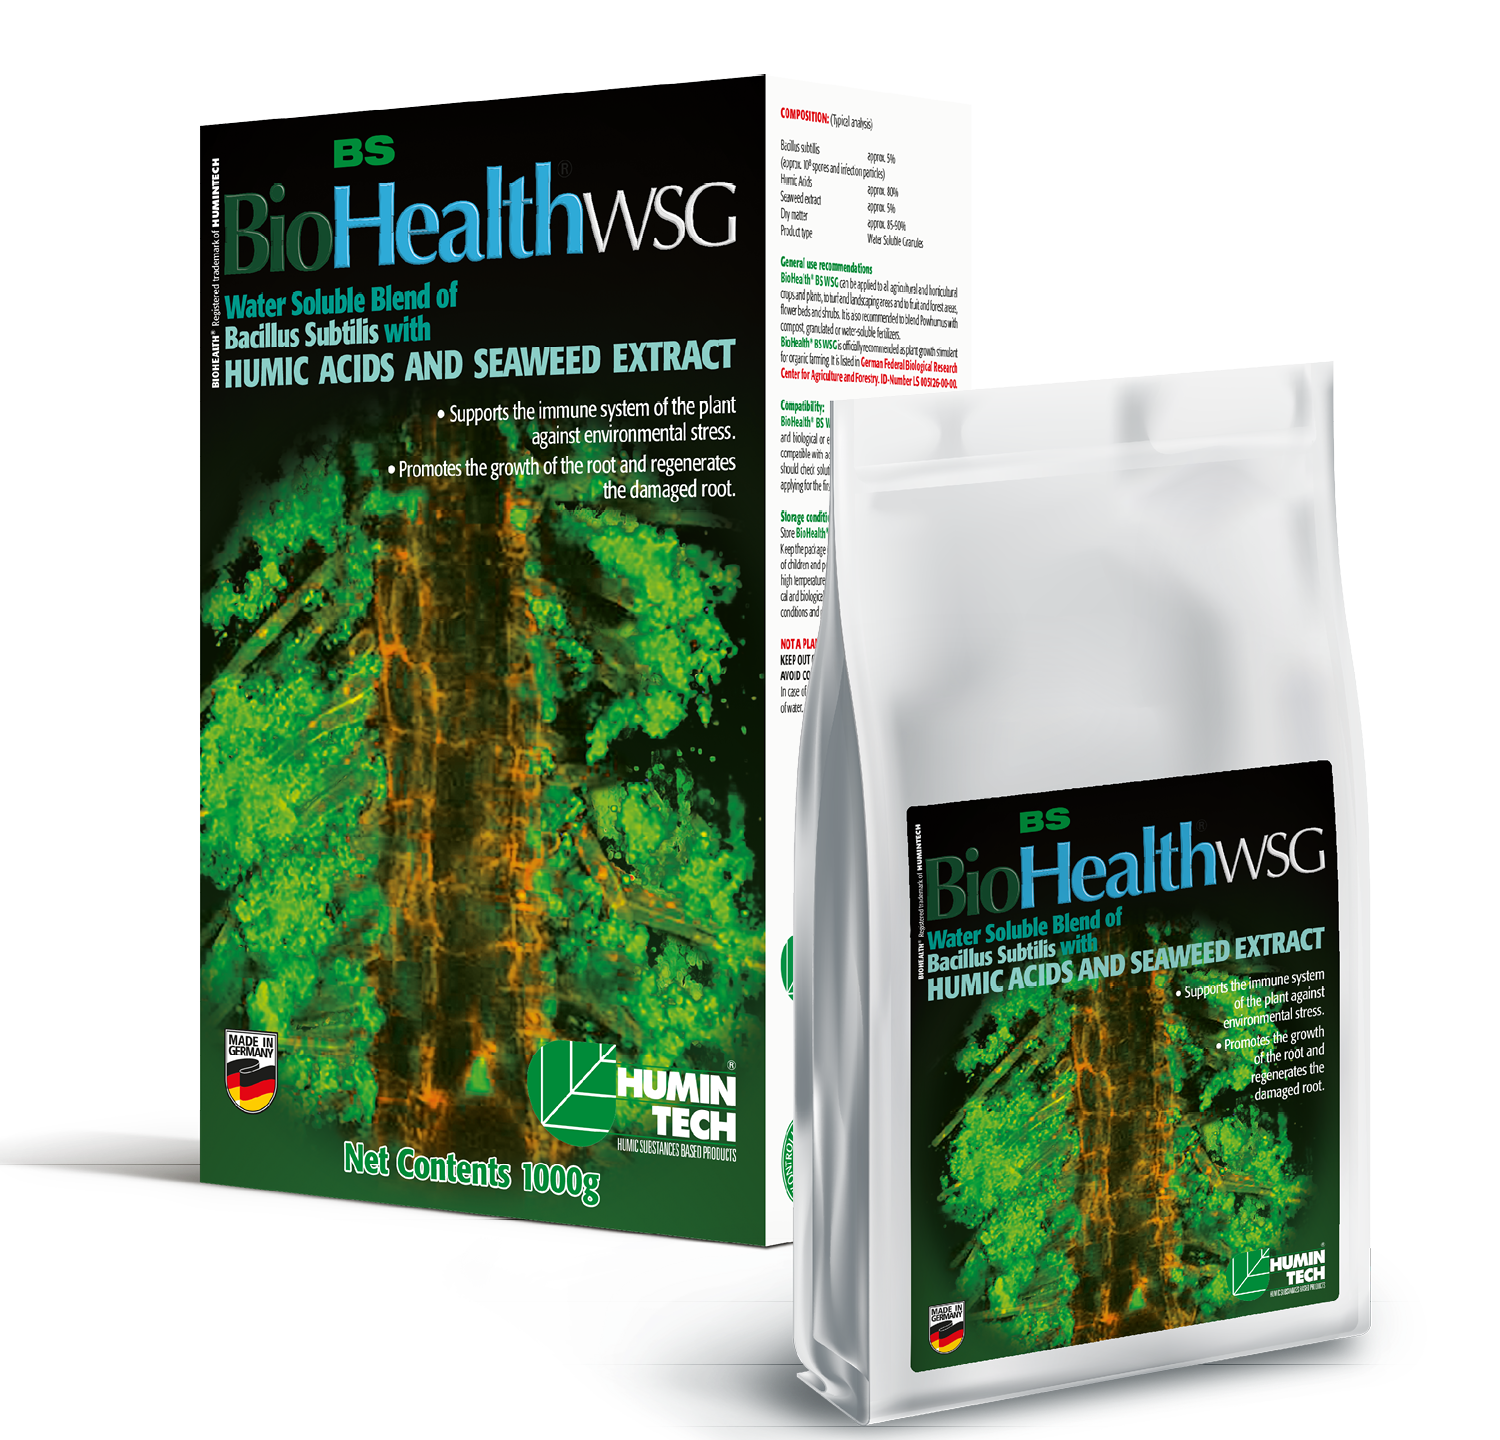 BioHealth BS WSG Water Soluble Blend of Bacillus Subtilis Seaweed Extract and Humic Acids